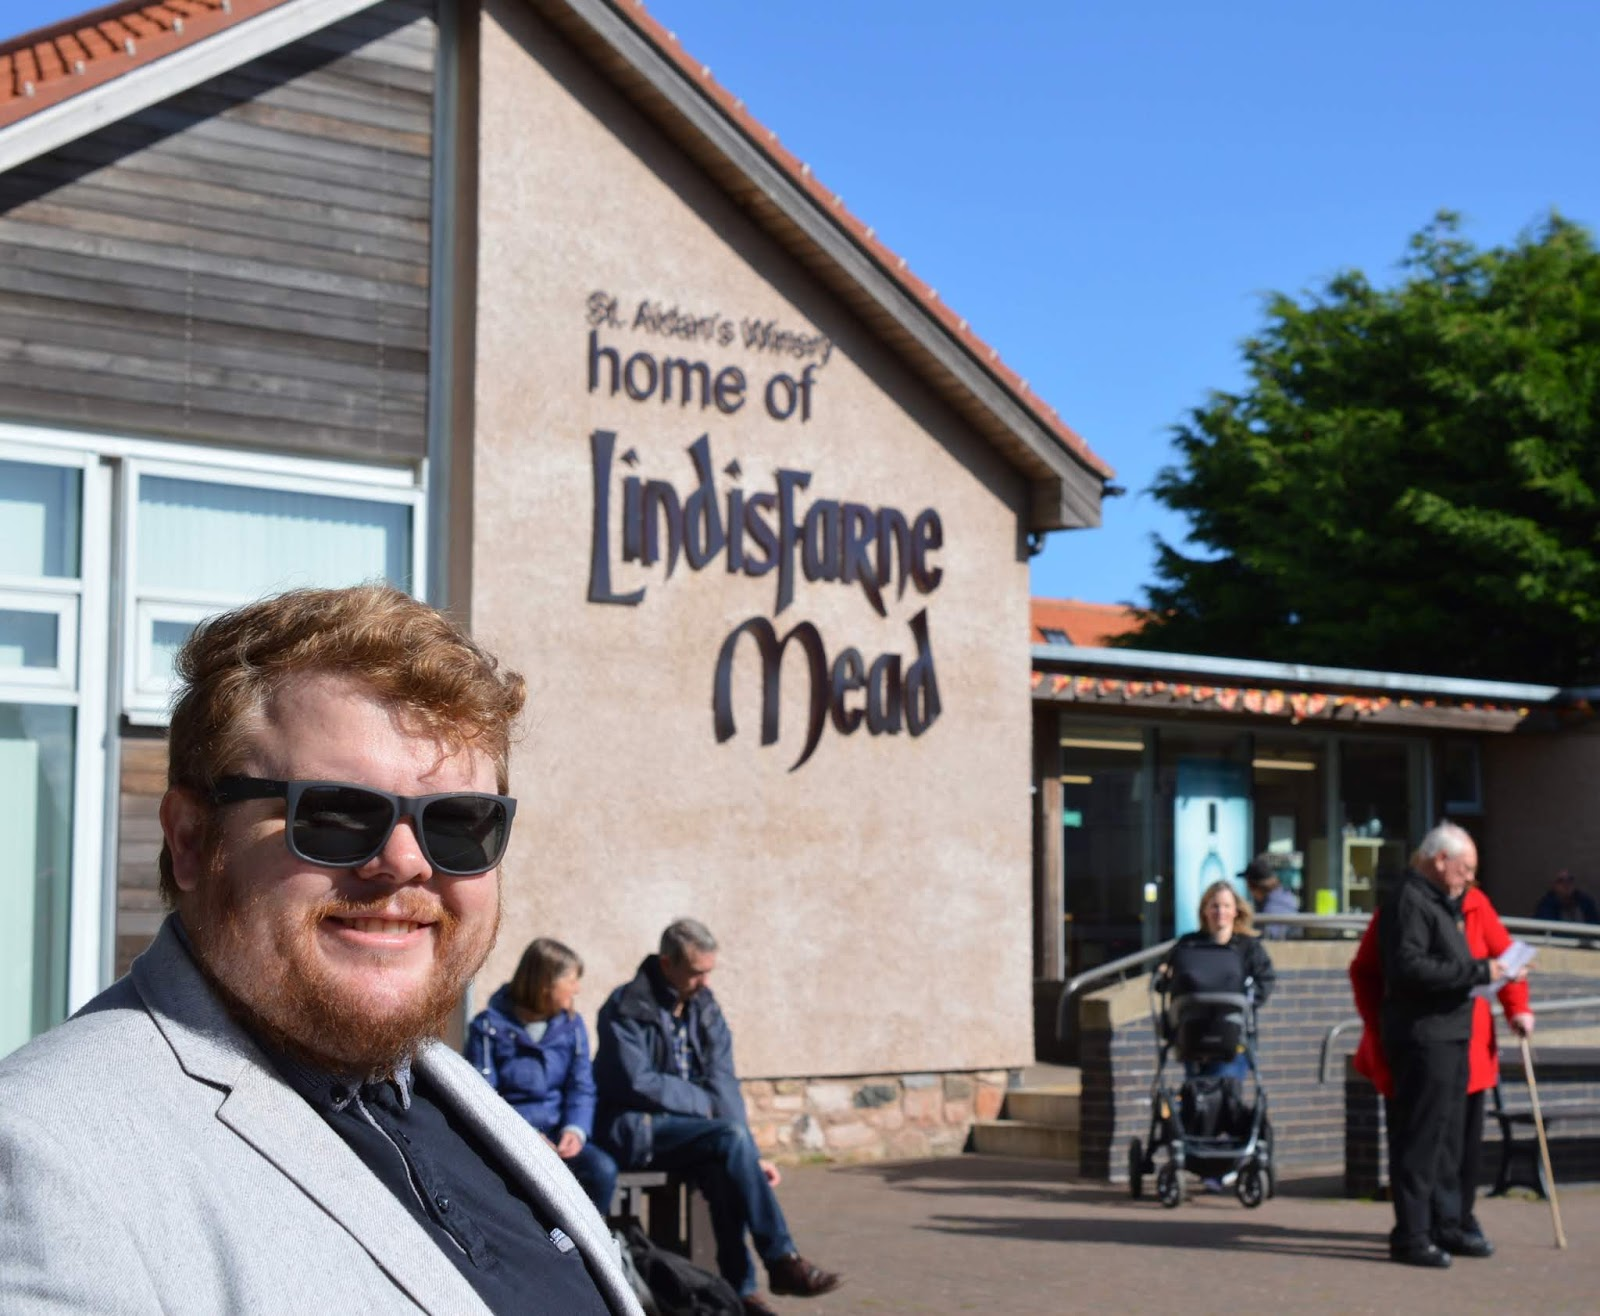 The Holy Island of Lindisfarne, Northumberland - what to see and do during a half day visit - lindisfarne mead shop